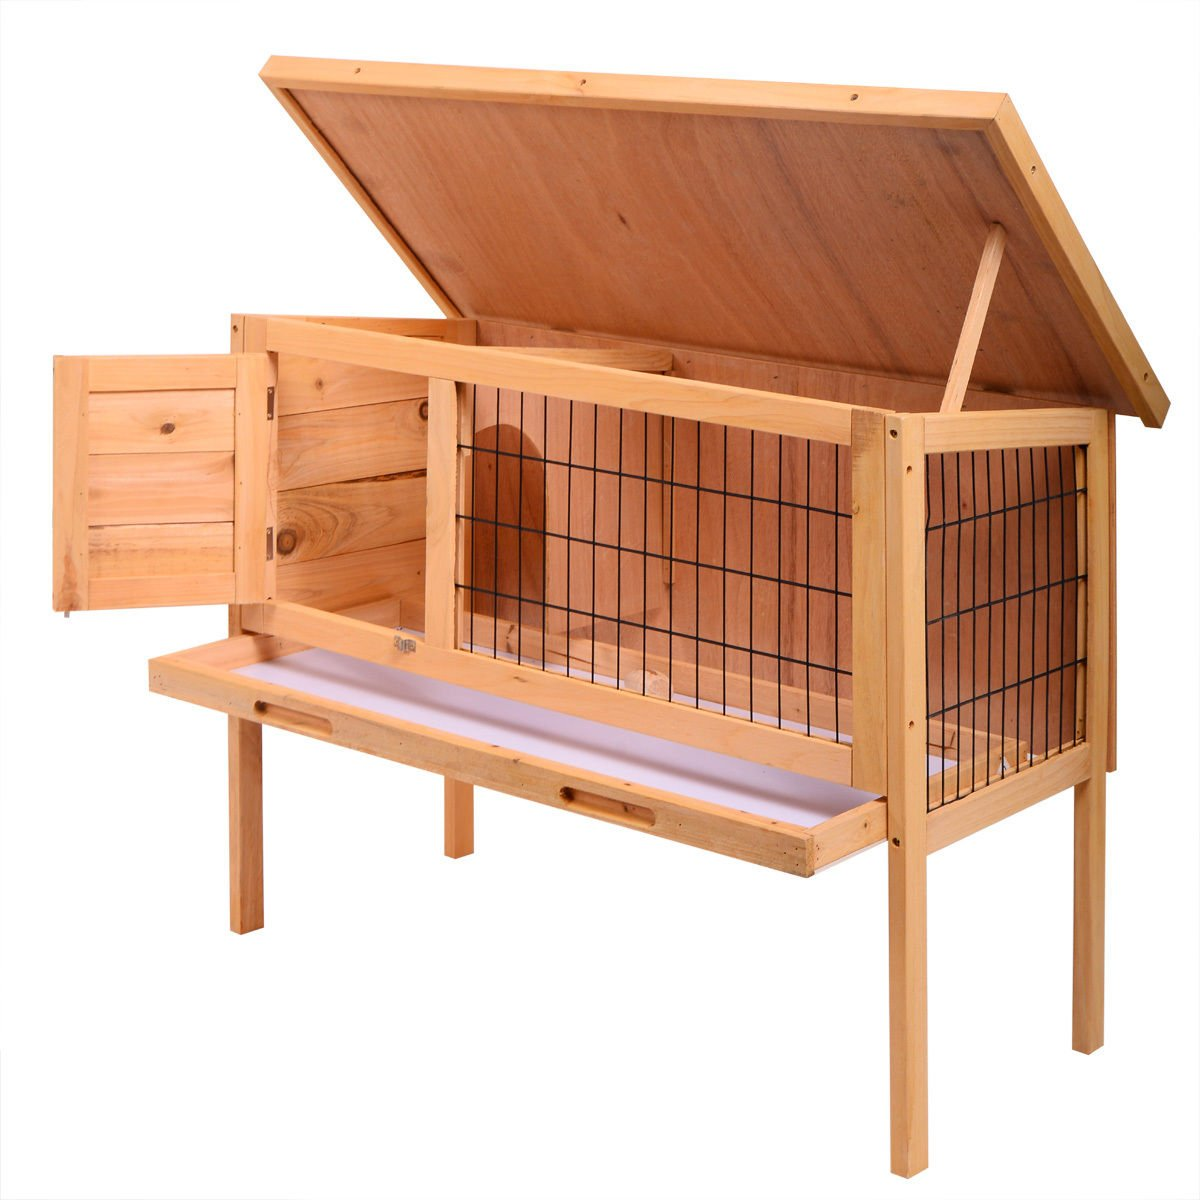 JAXPETY 35'' Wooden Chicken Coop Hen House Pet Animal Poultry Cage Rabbit Hutch w/Run